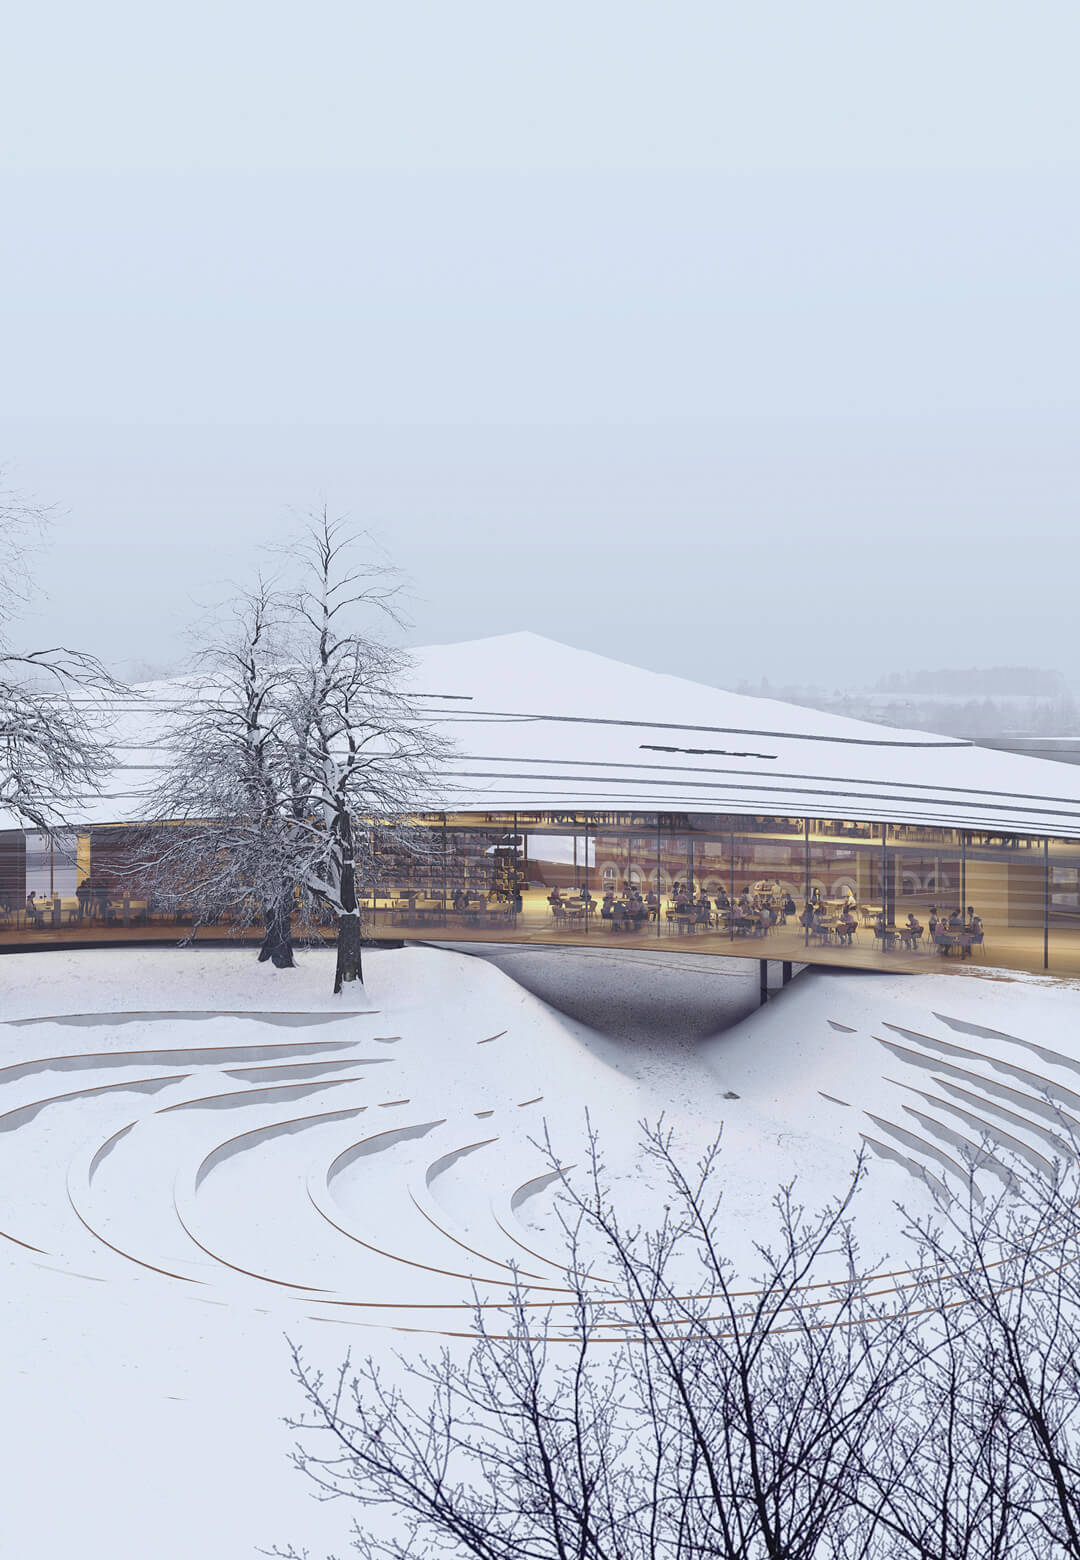 Ibsen Library in Skien, Norway, by Kengo Kuma and Associates and Mad Arkitekter | Ibsen Library by Kengo Kuma | STIRworld